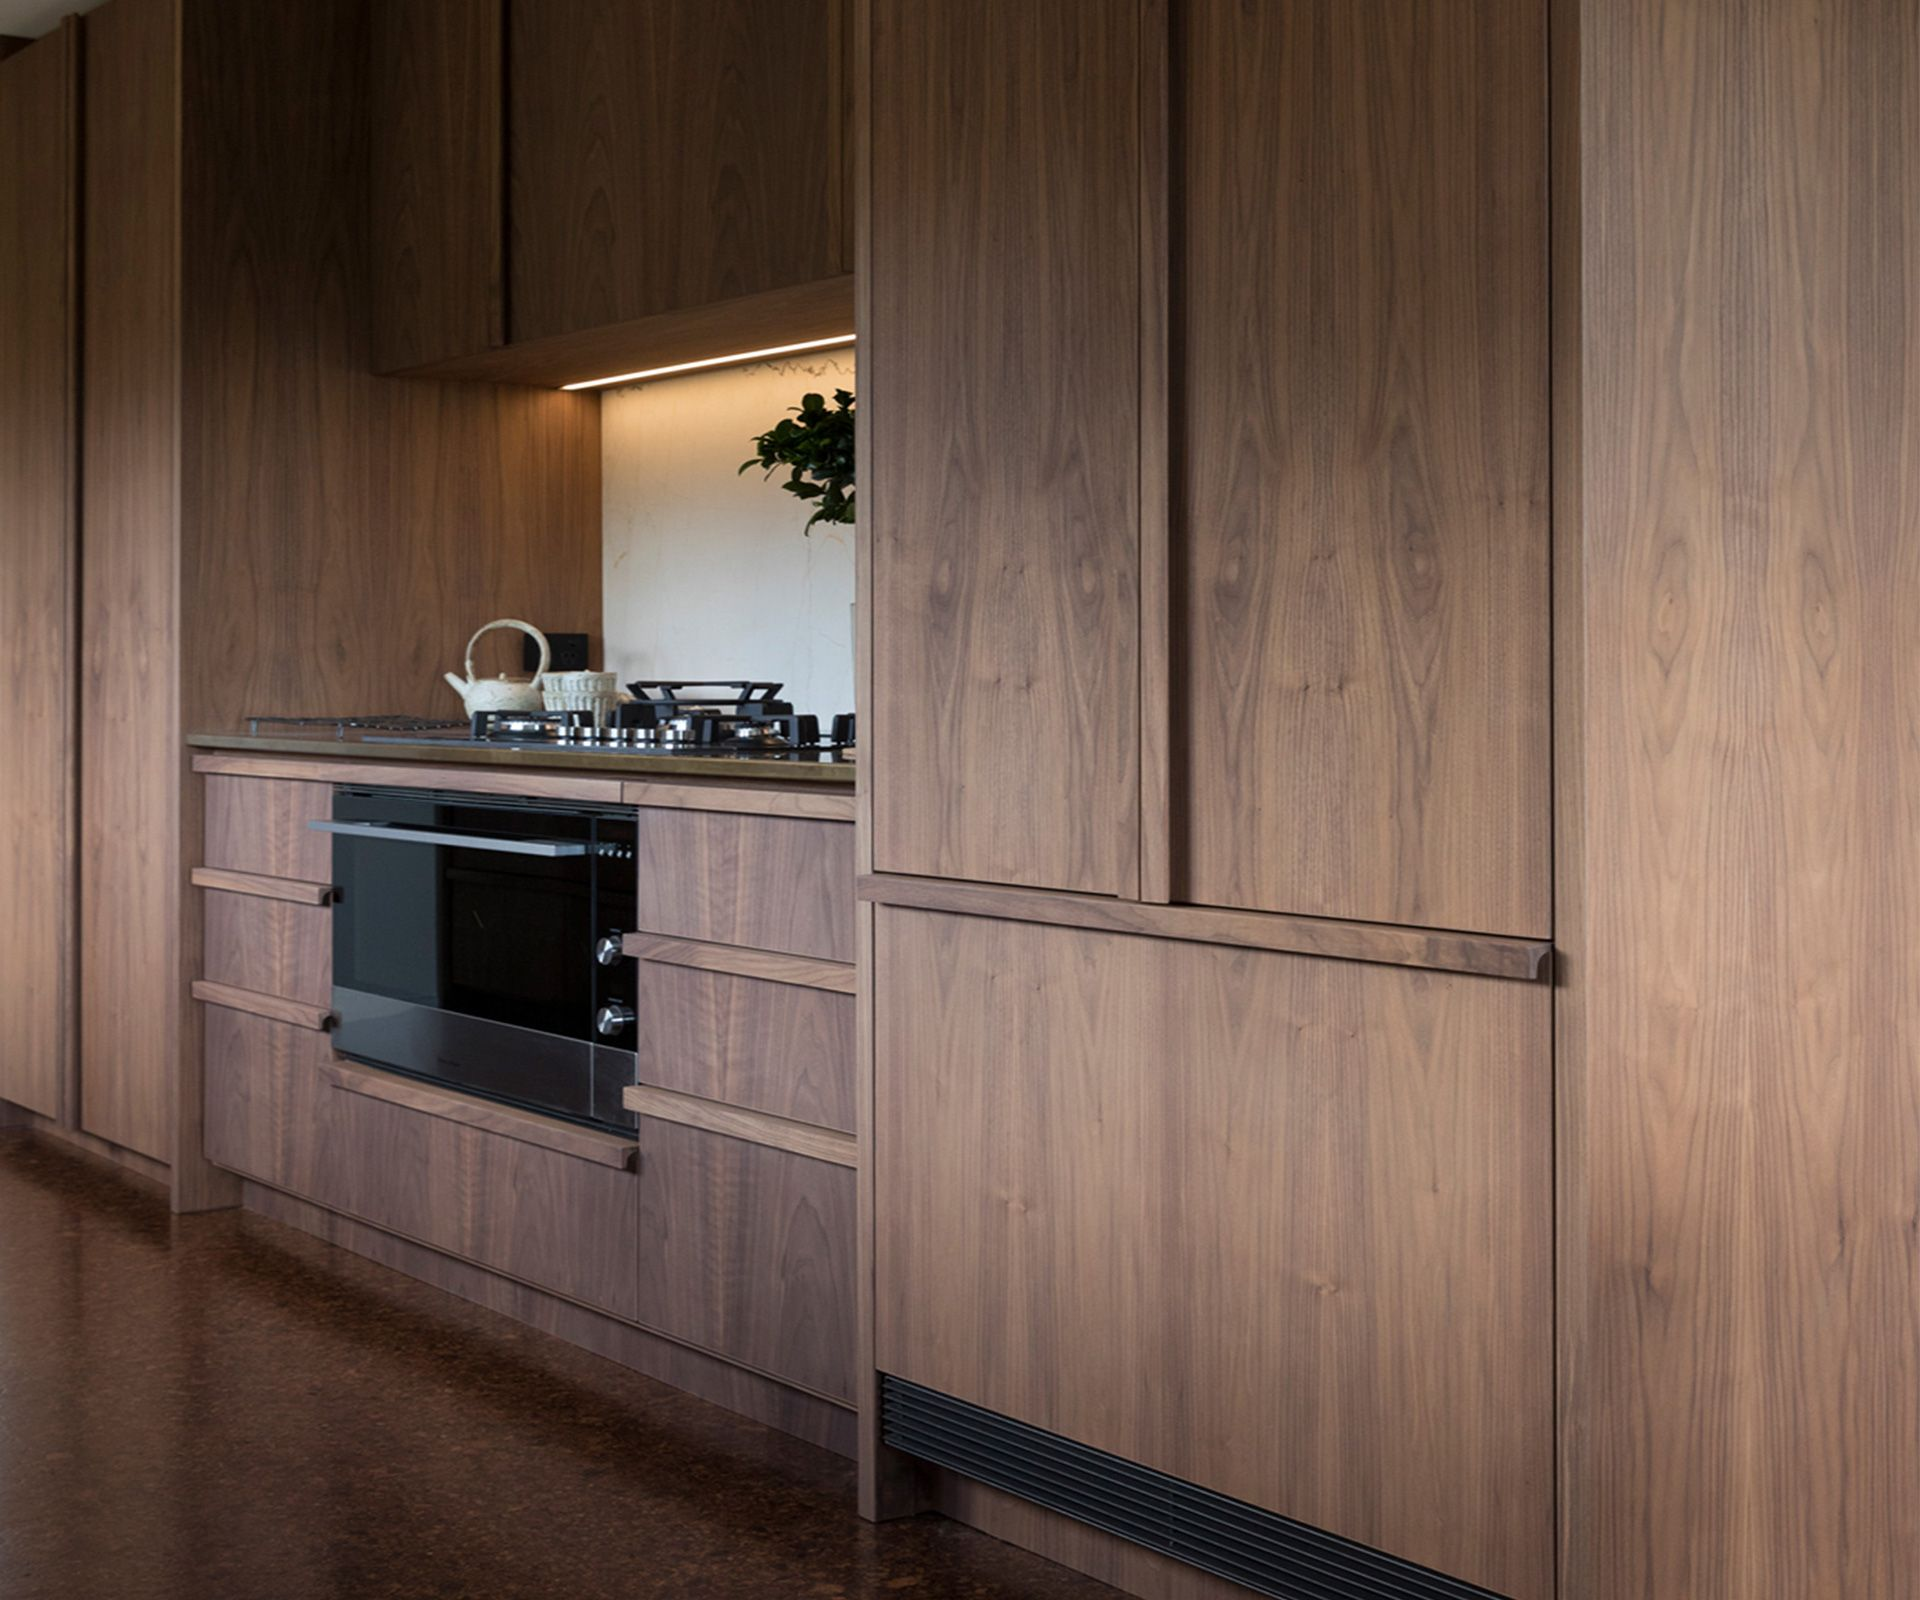 Kitchen Countertops Nz: Kitchen For Simon Devitt By Bureaux // Walnut Veneer